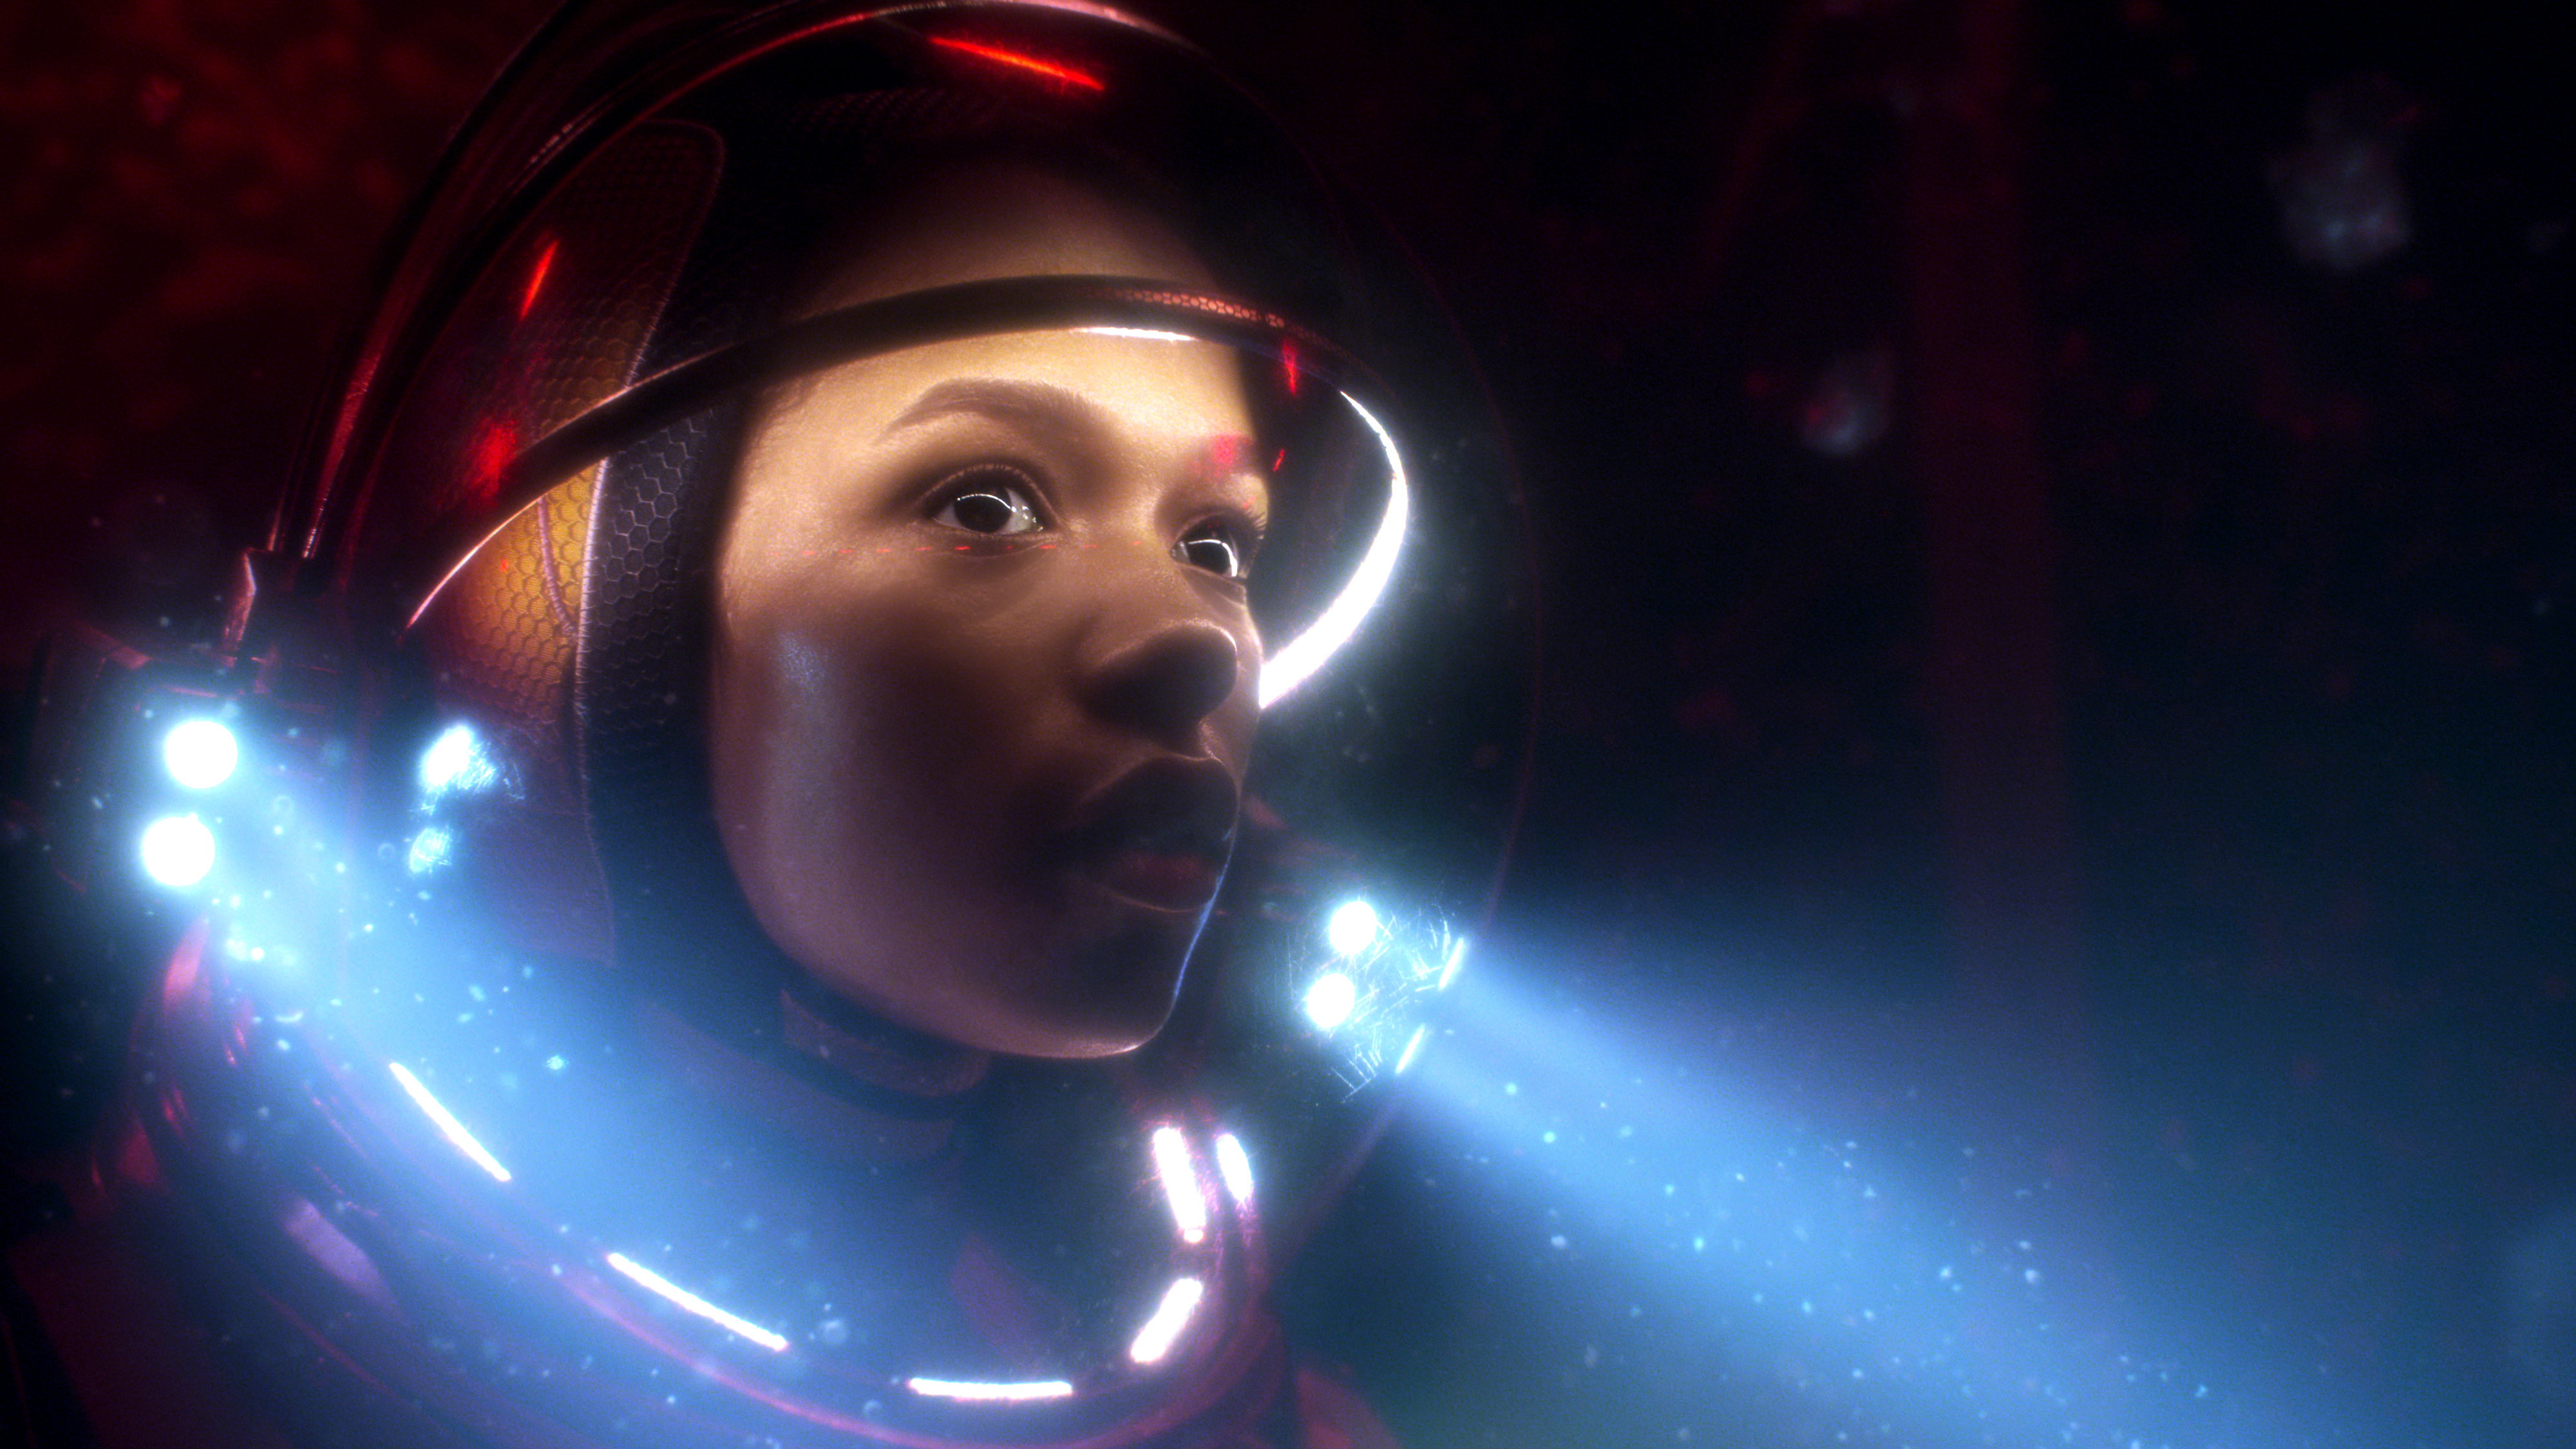 Taylor Russell As Judy In Lost In Space 4k Wallpapers Hd Wallpapers